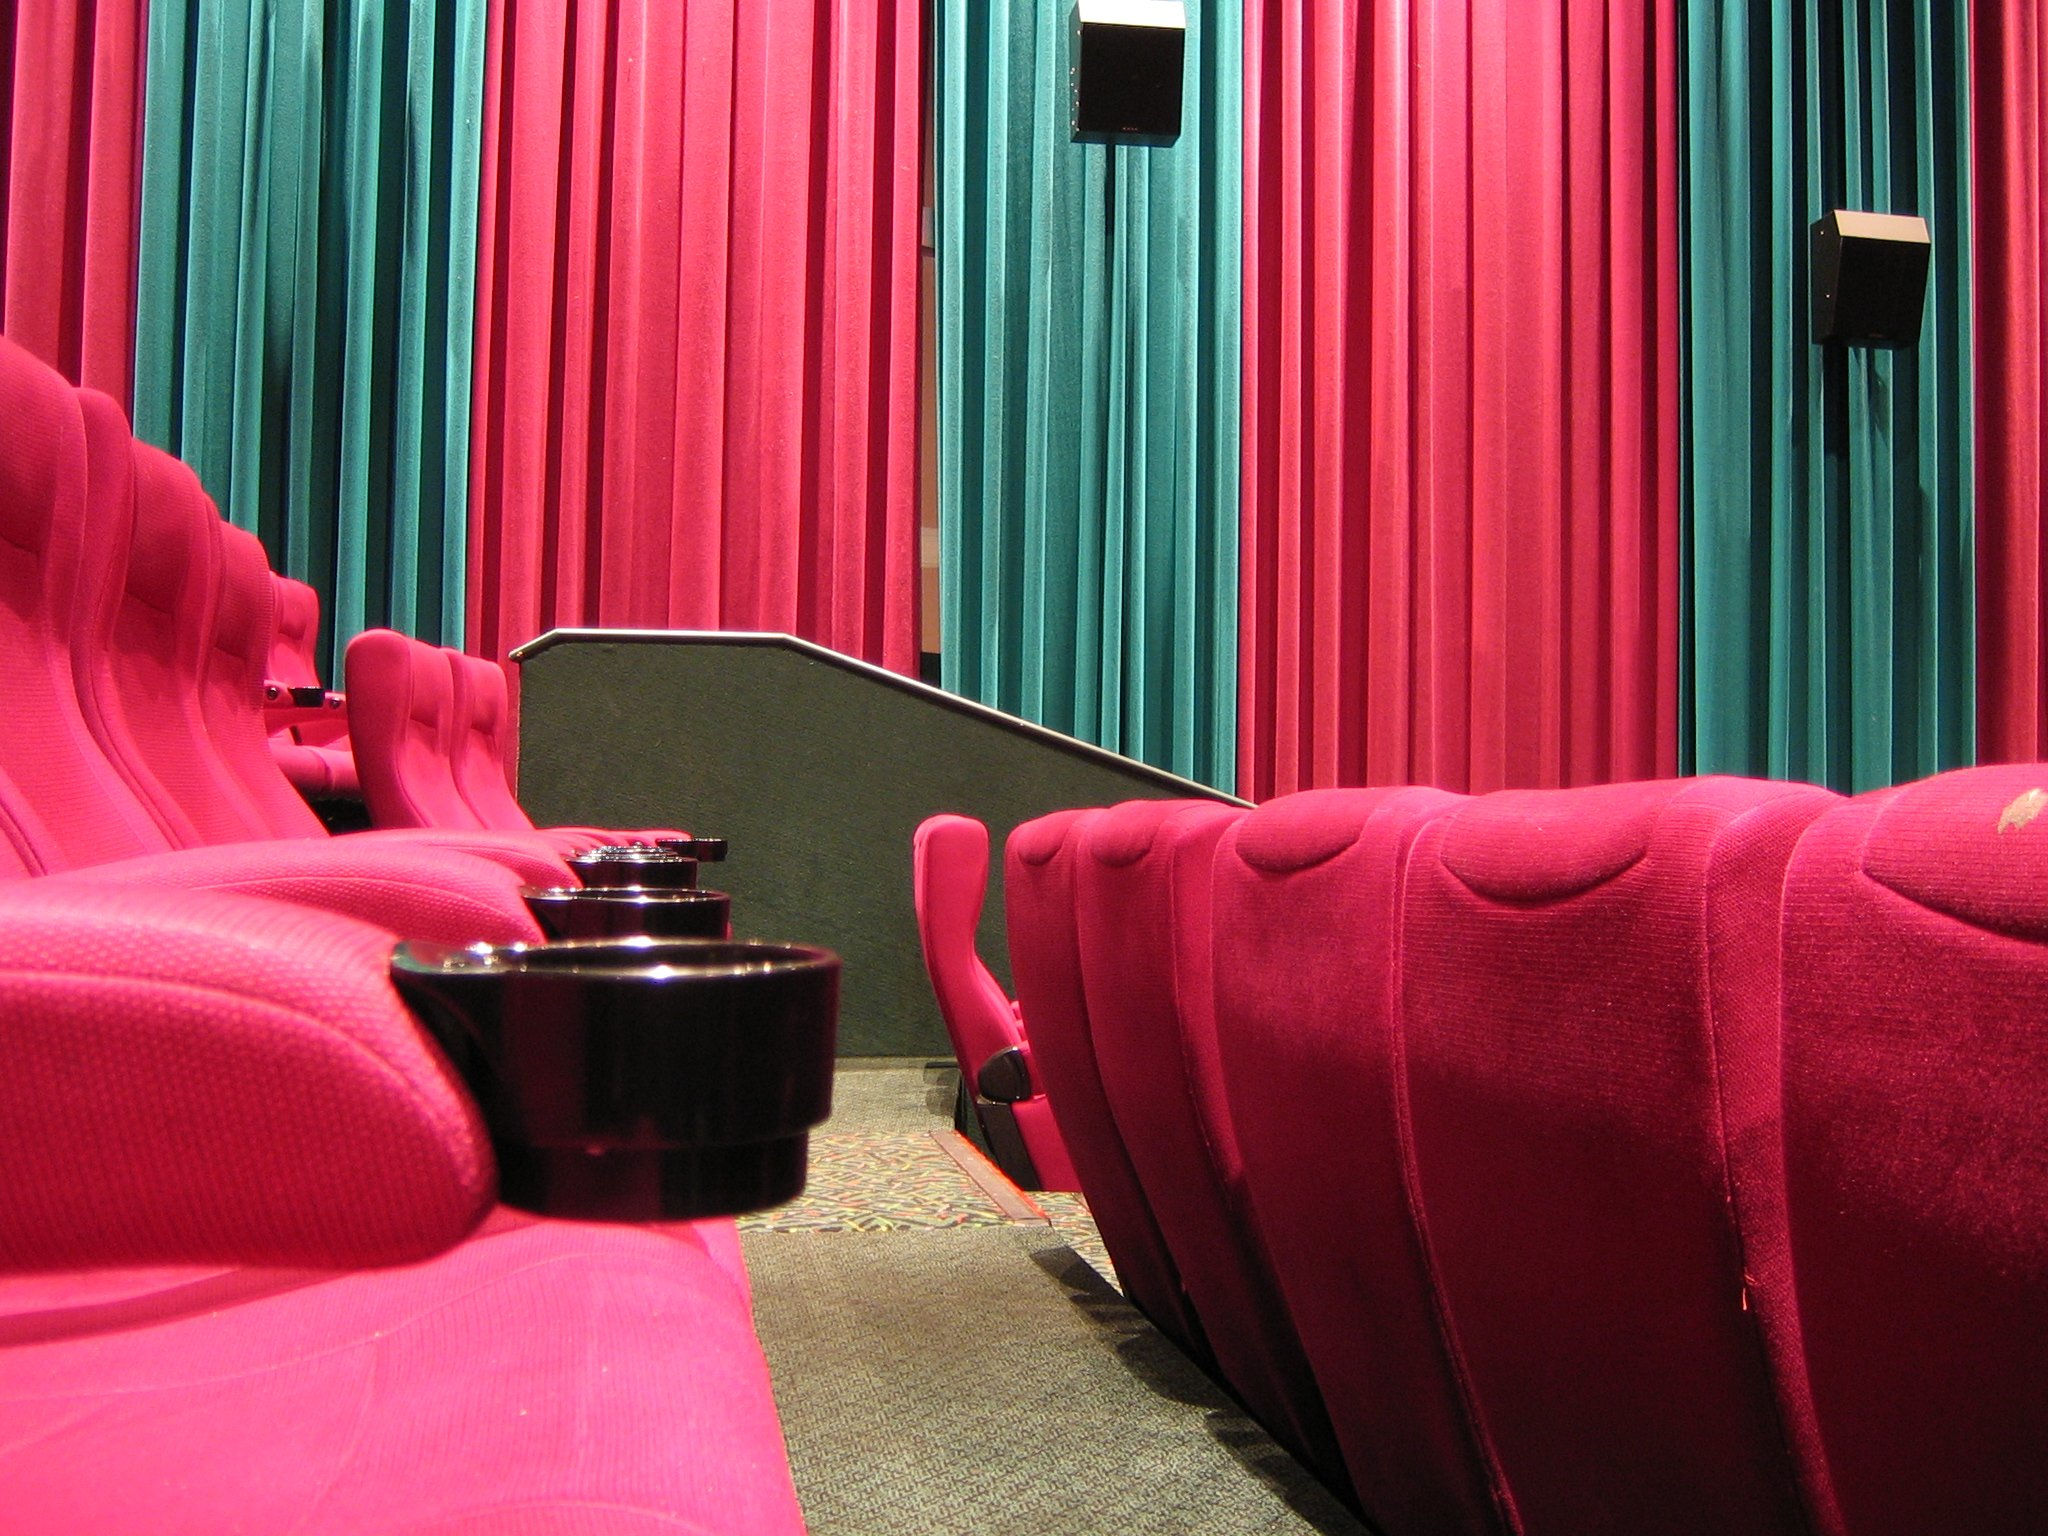 Curtains On The Wall Effect Better Worse Avs Forum Home Theater Discussions And Reviews